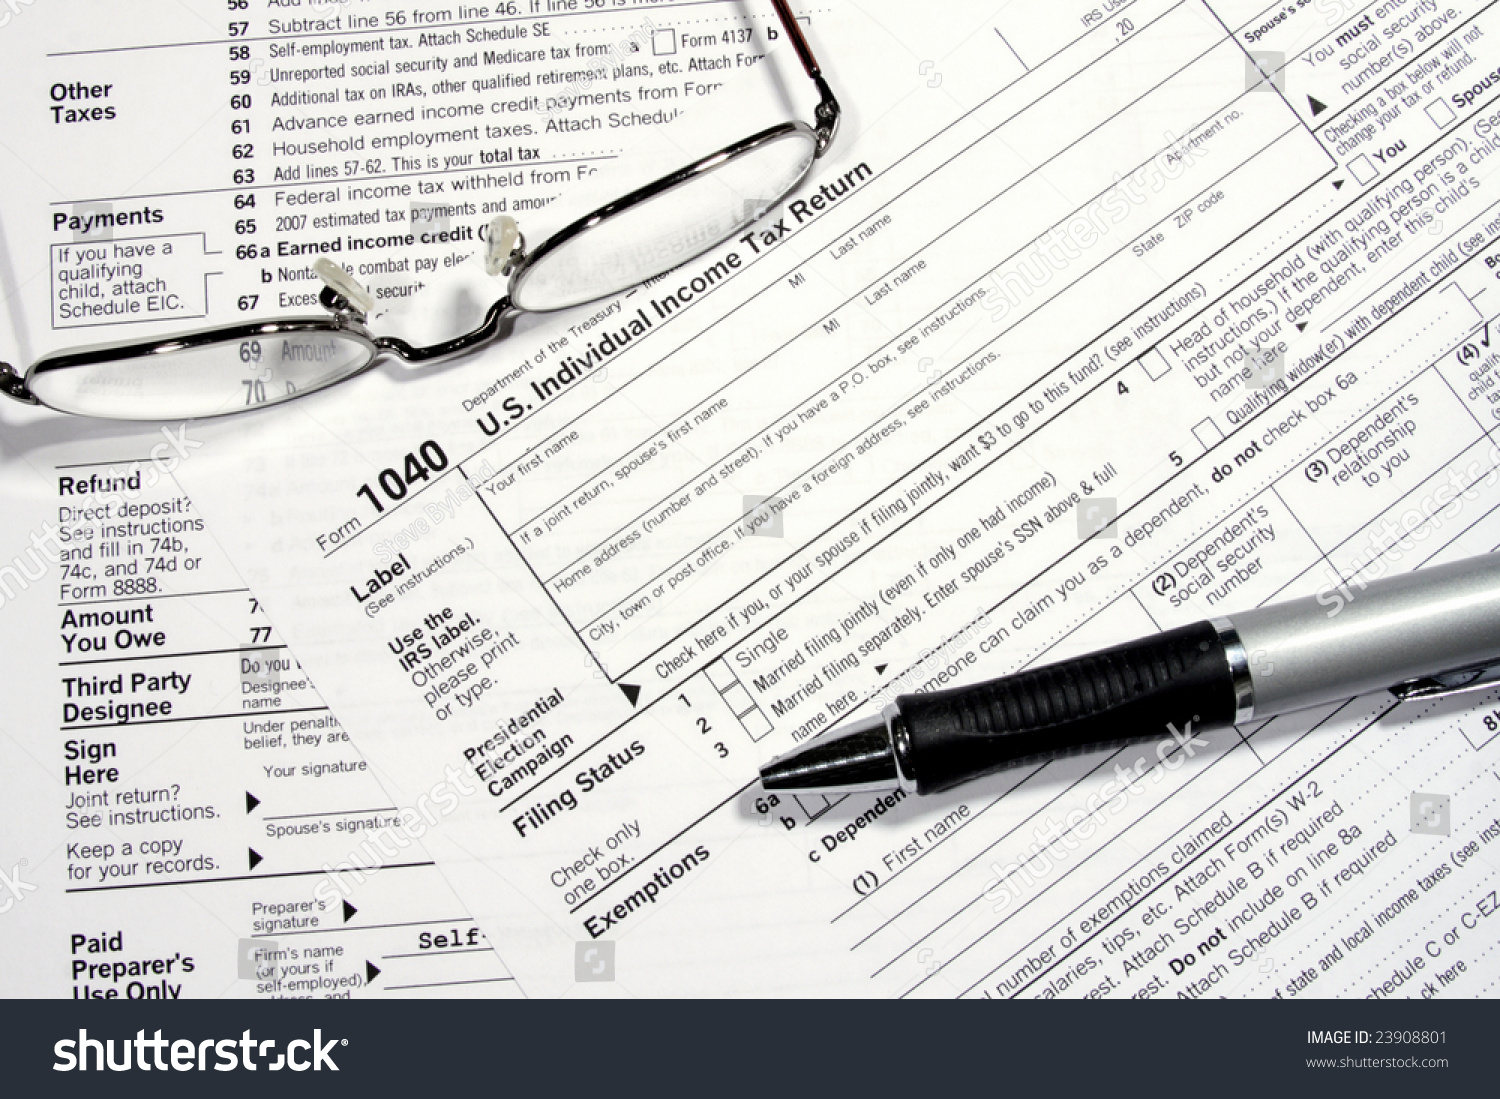 USA IRS tax form 1040 for year 2017 with pen and taken from above ...